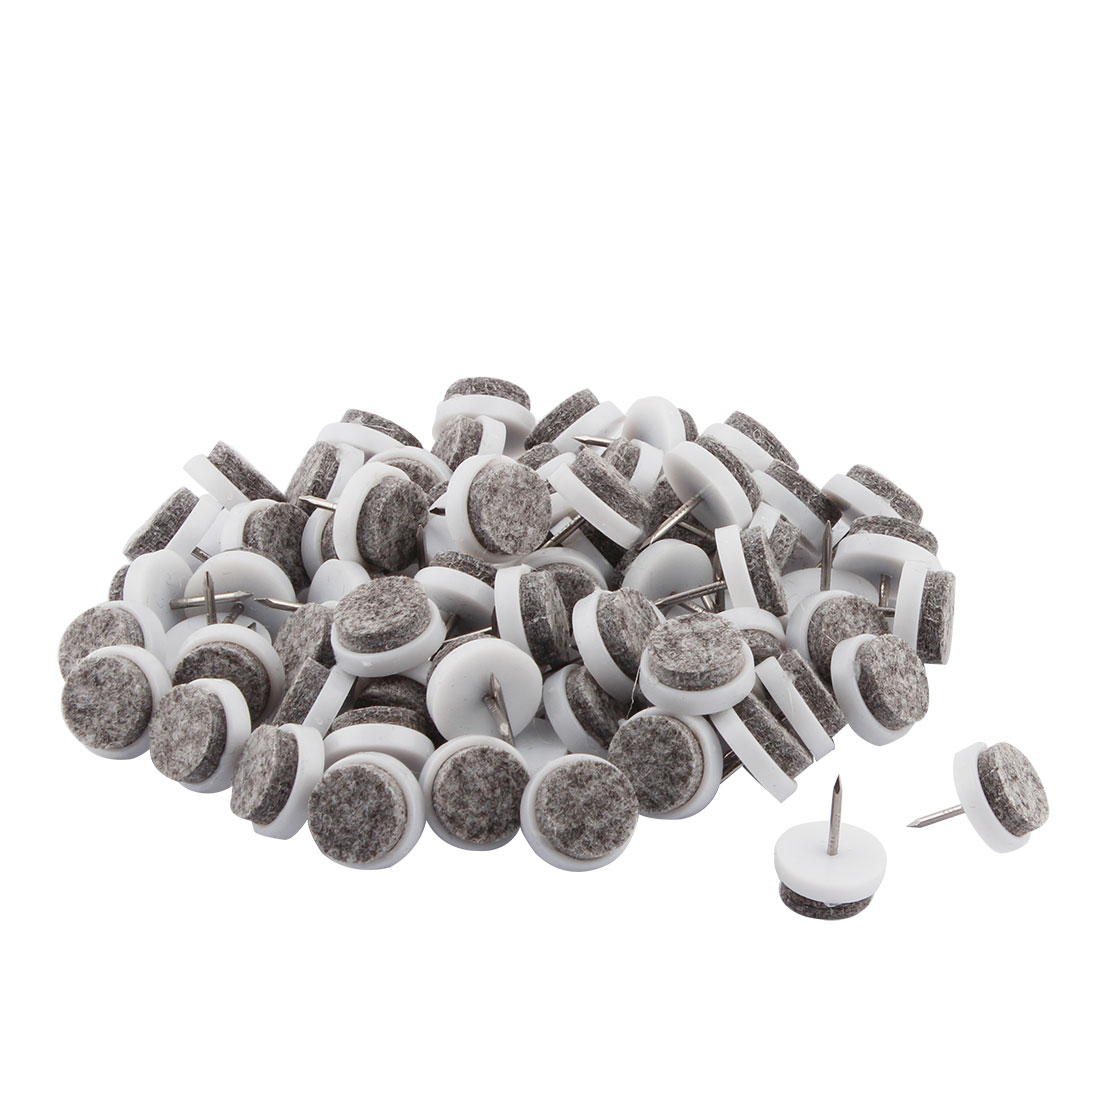 Home Restaurant Plastic Furniture Table Chair Leg Nail Protector Gray White 70 Pcs